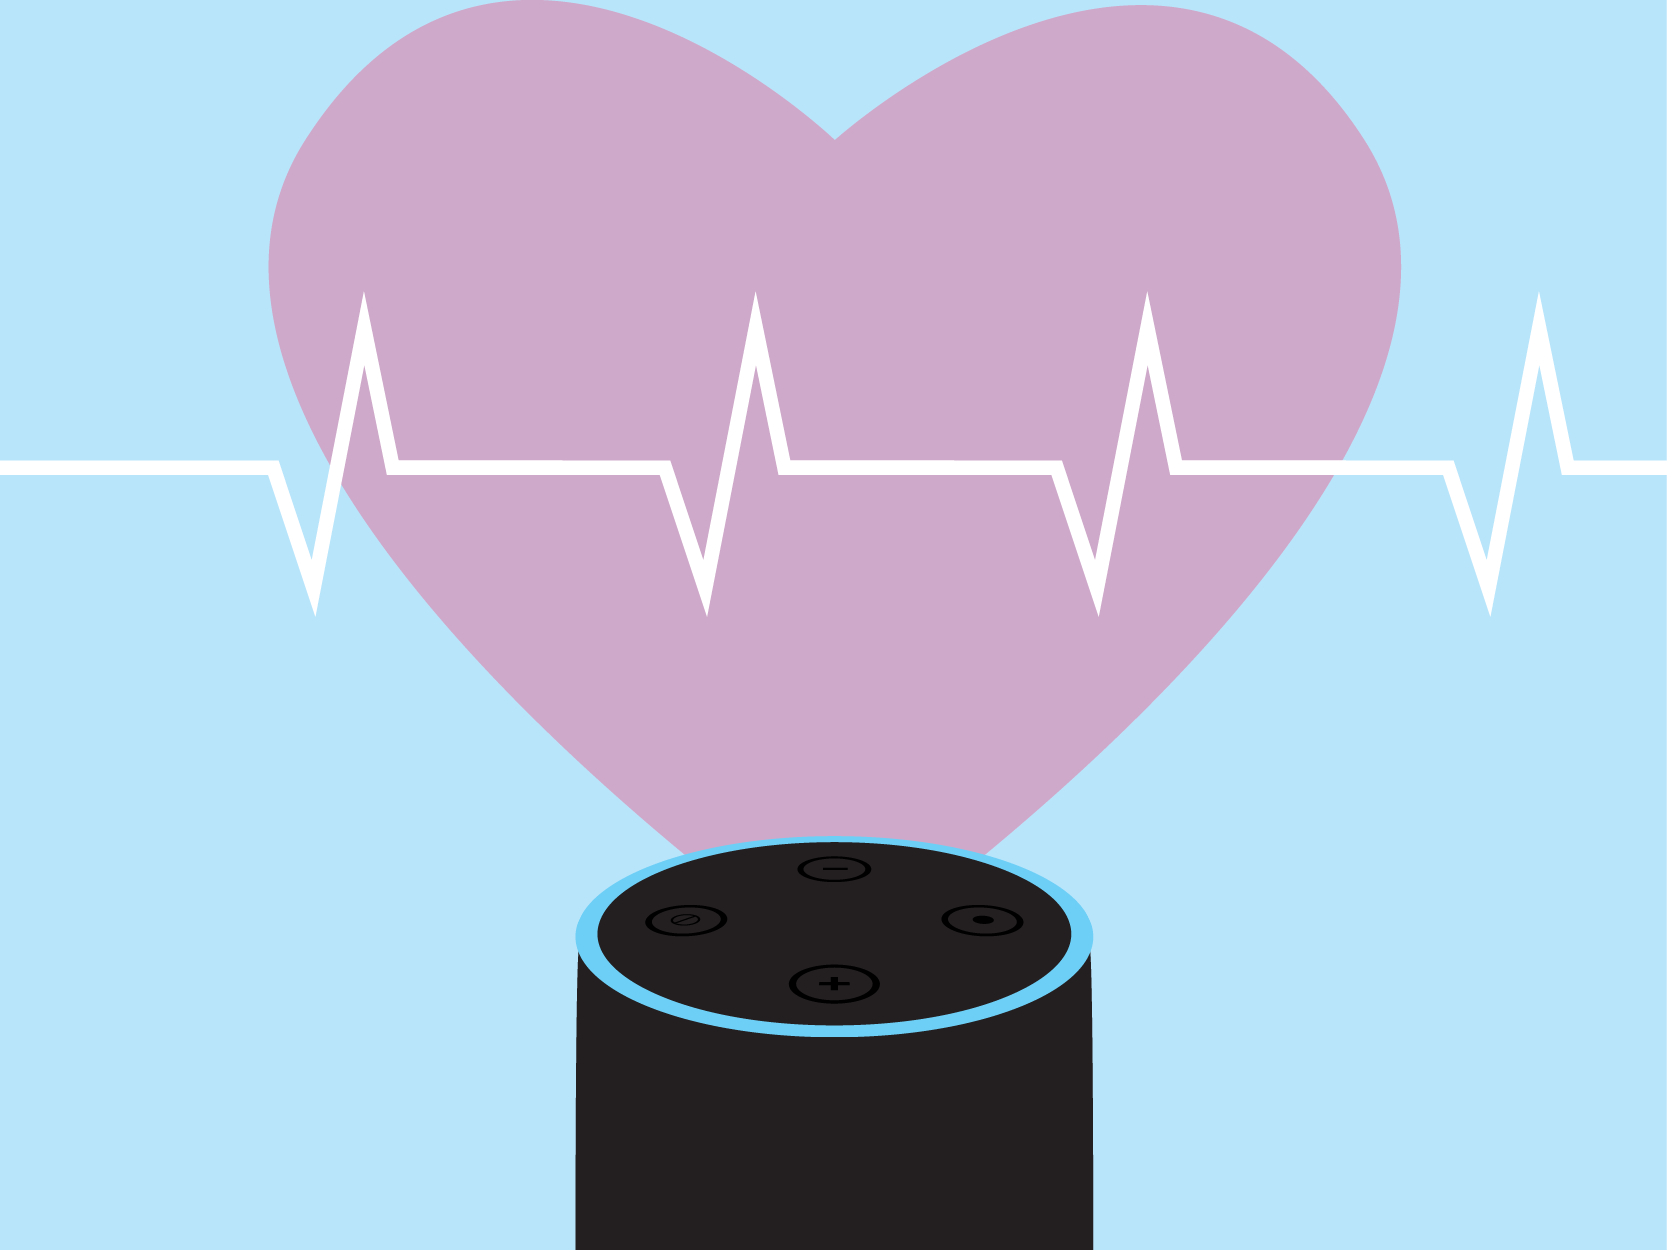 Six Minute Cardio Amazon Alexa Skill